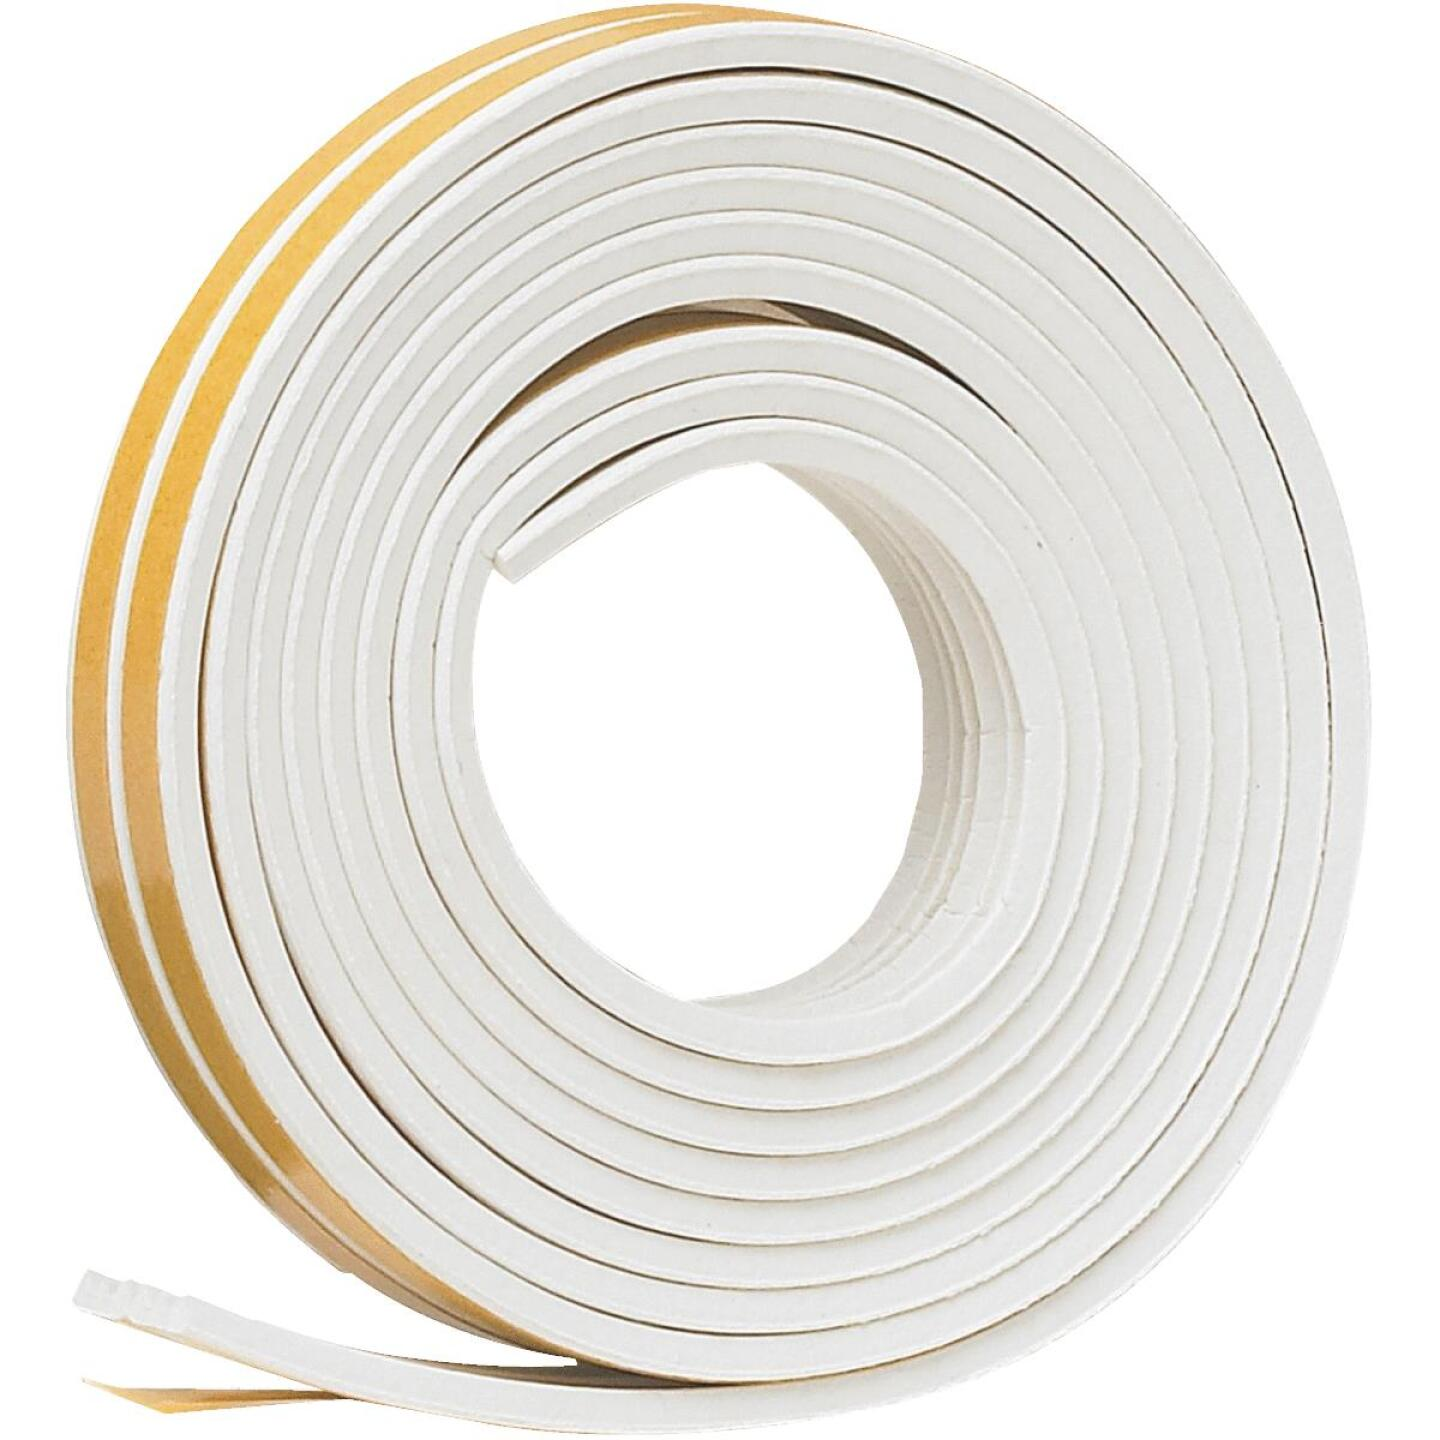 Do it Best 3/8 In. x 17 Ft. White Narrow Weatherseal Tape Image 3